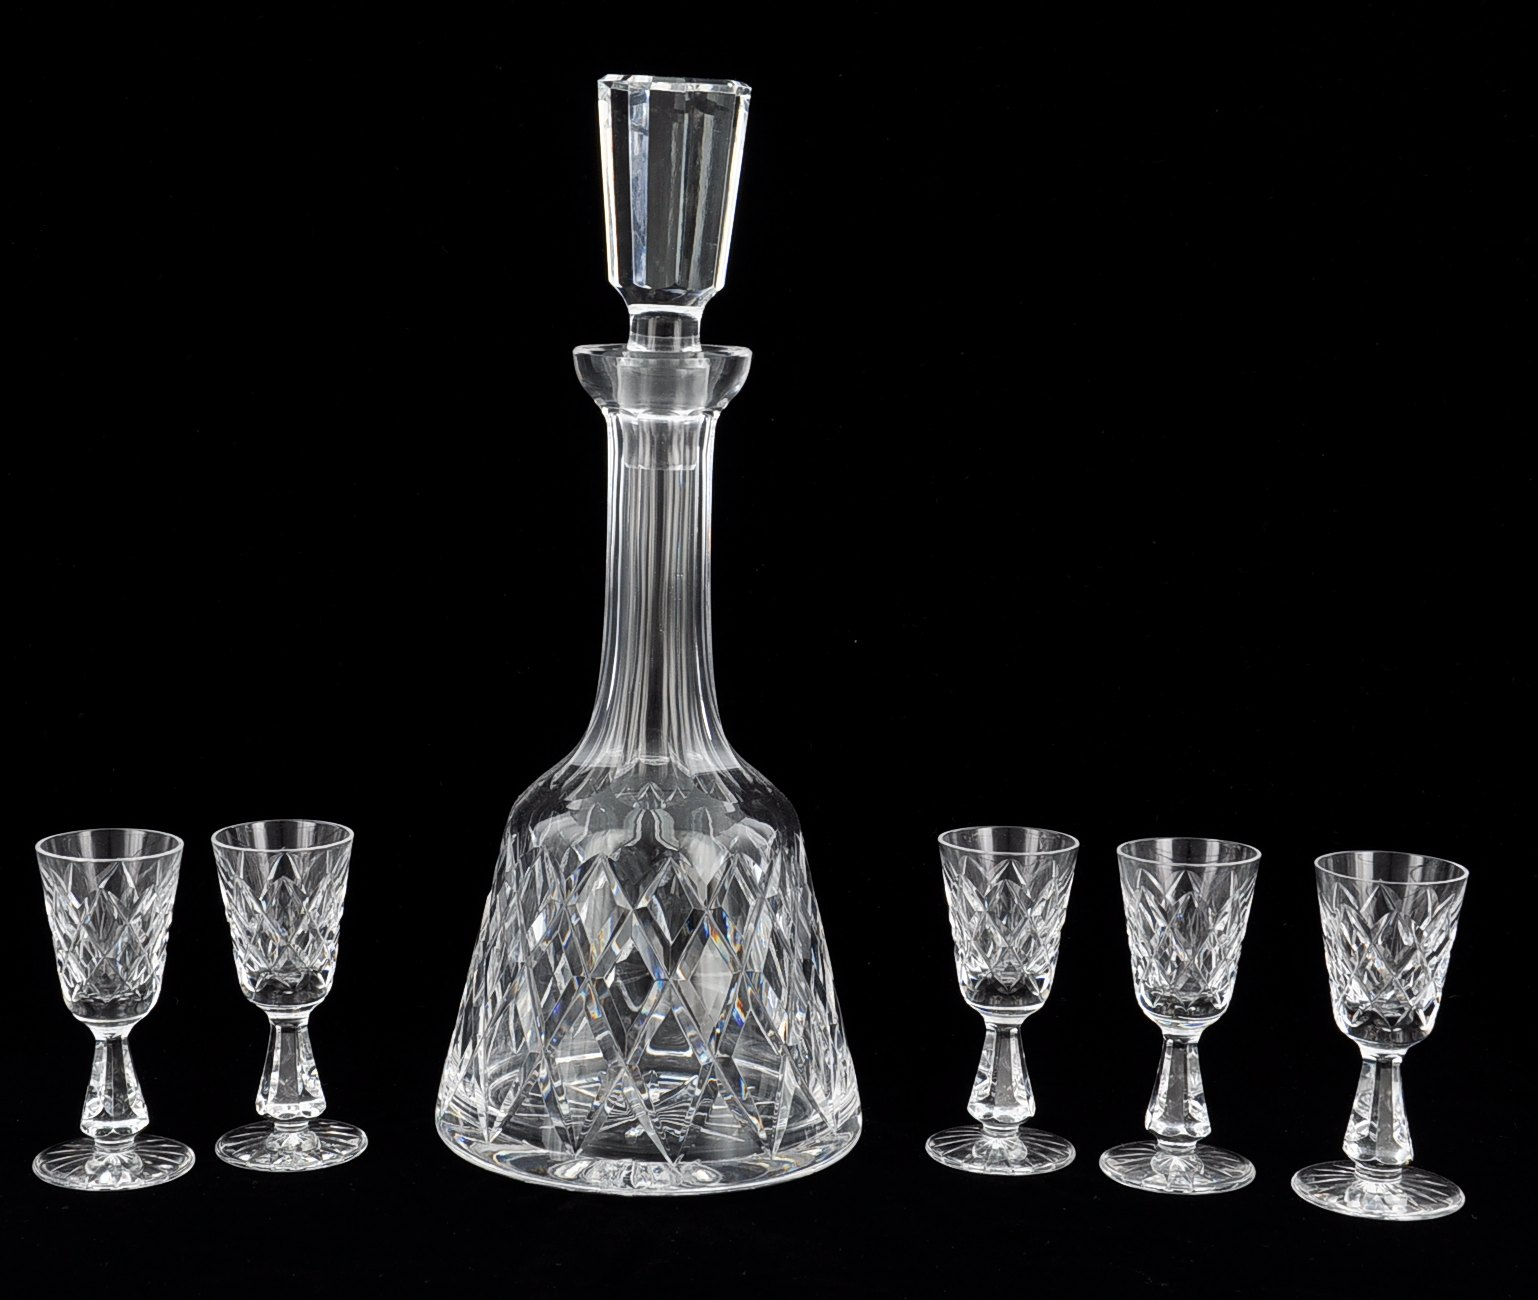 A Waterford Crystal Decanter With Stopper And Five Cordial